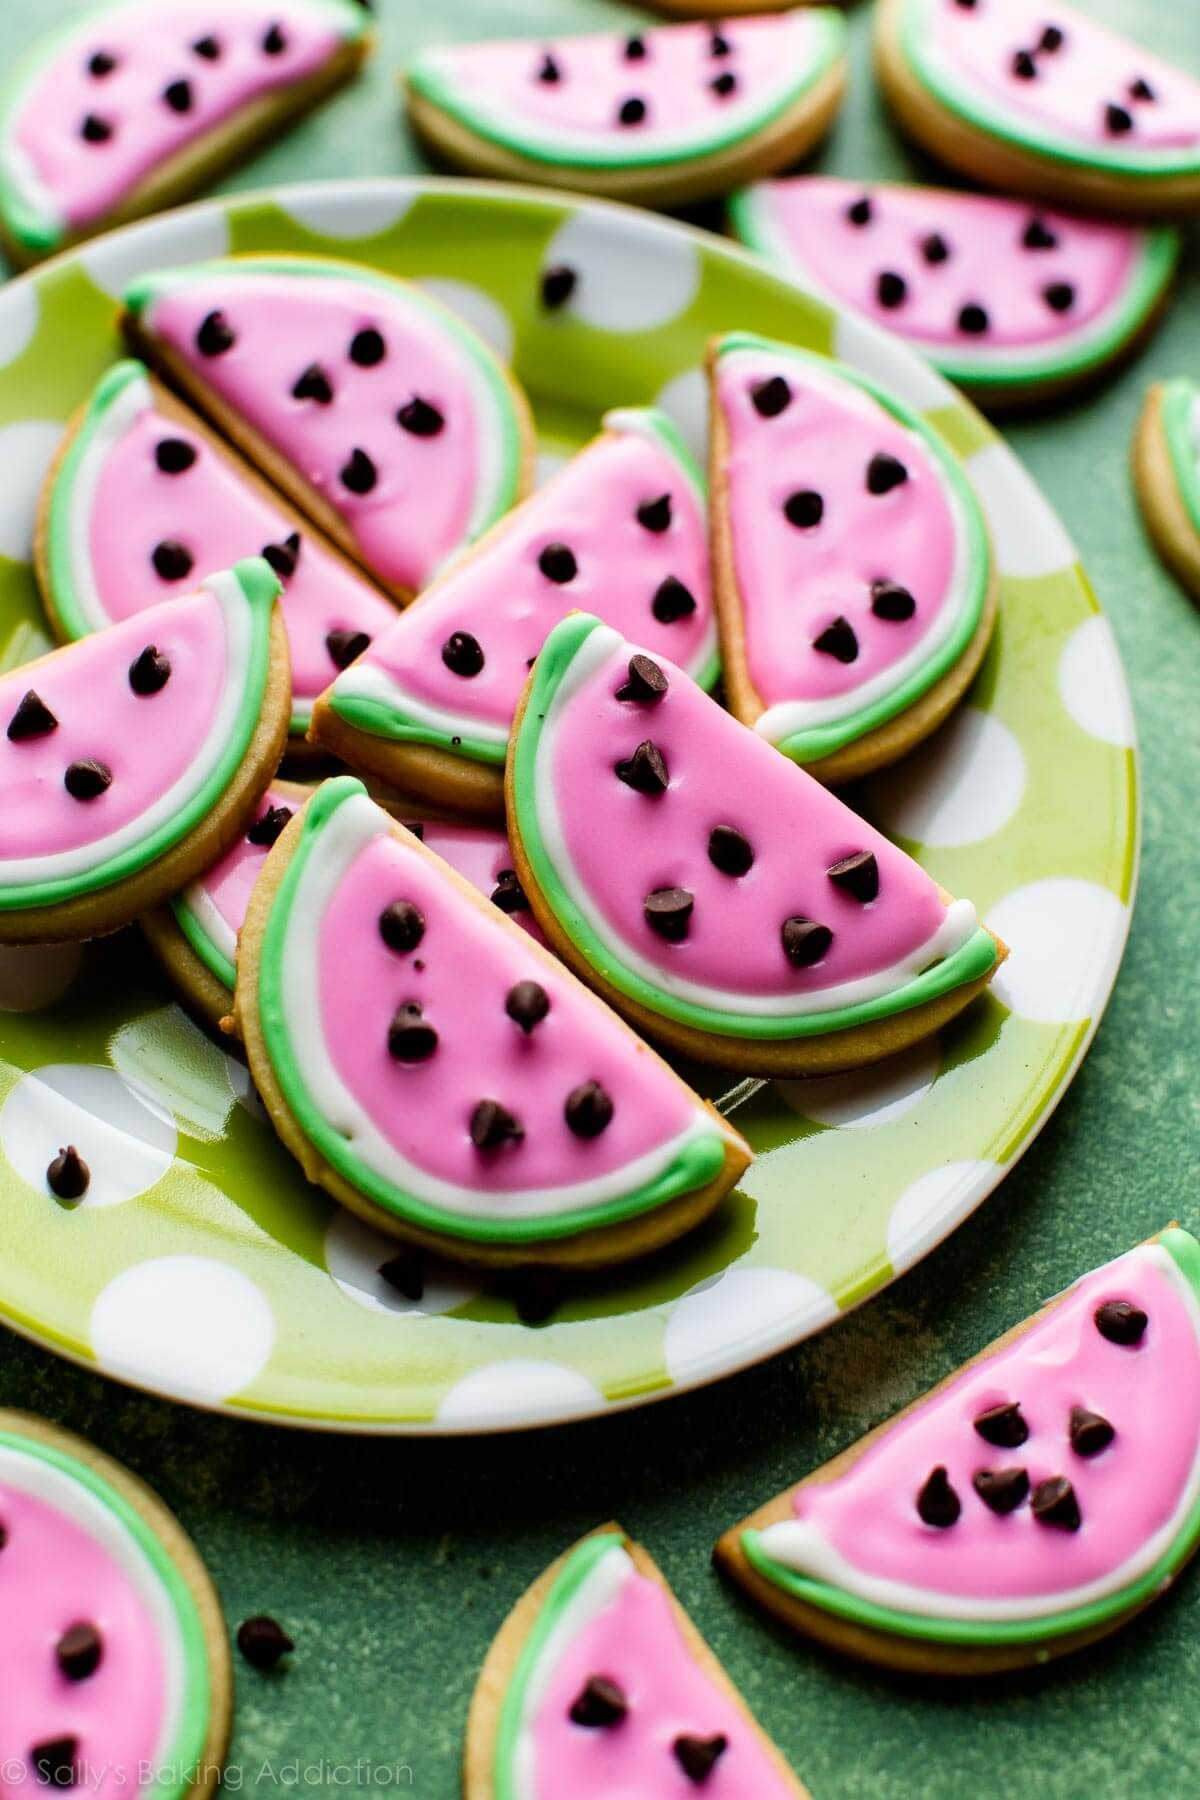 How to make adorable watermelon sugar cookies with easy royal icing decoration! #sugarcookies #sugarcookiecutouts #watermelonsugarcookies